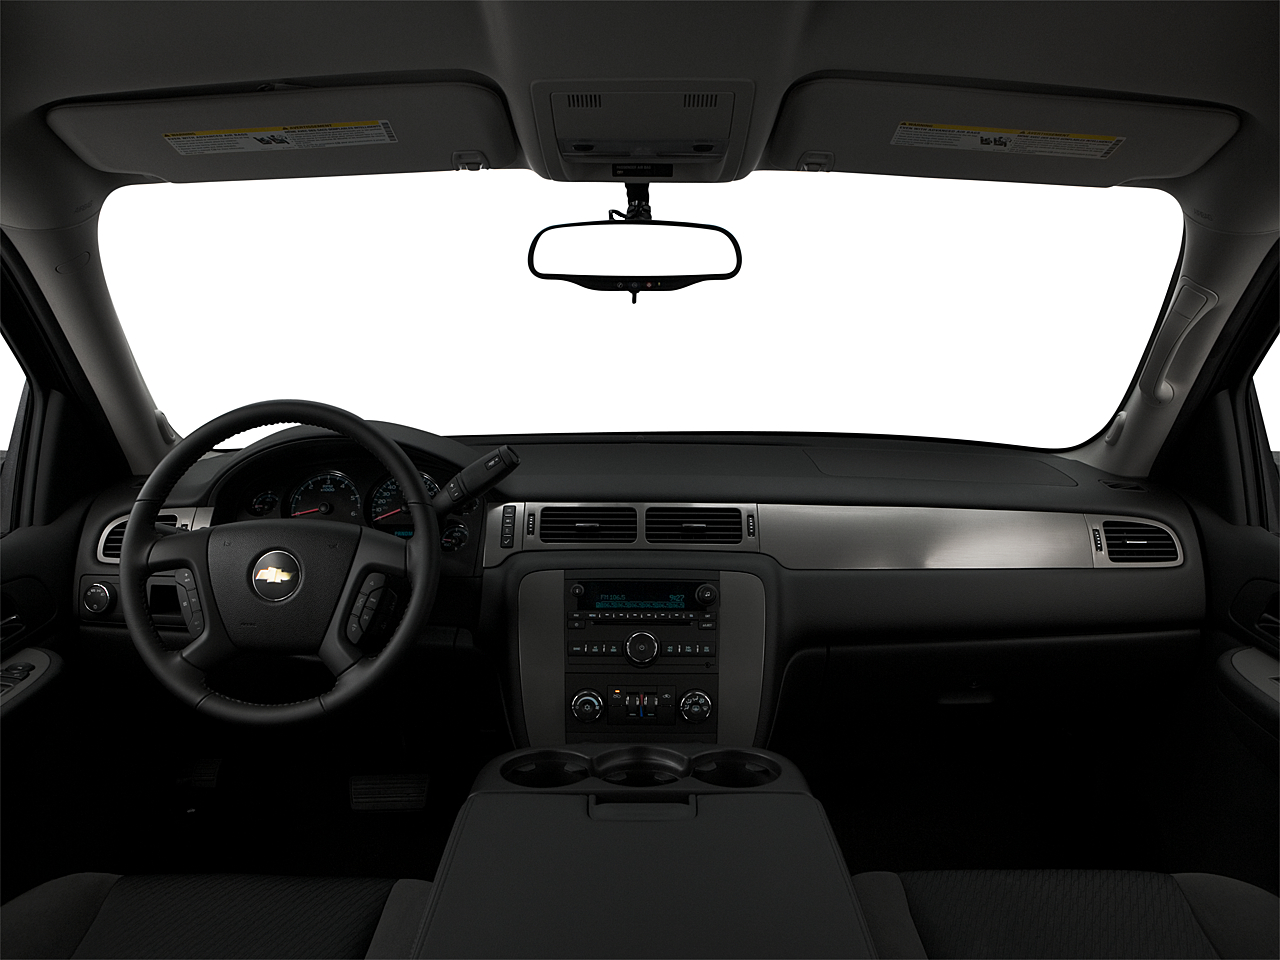 2009 Chevrolet Avalanche LS, centered wide dash shot